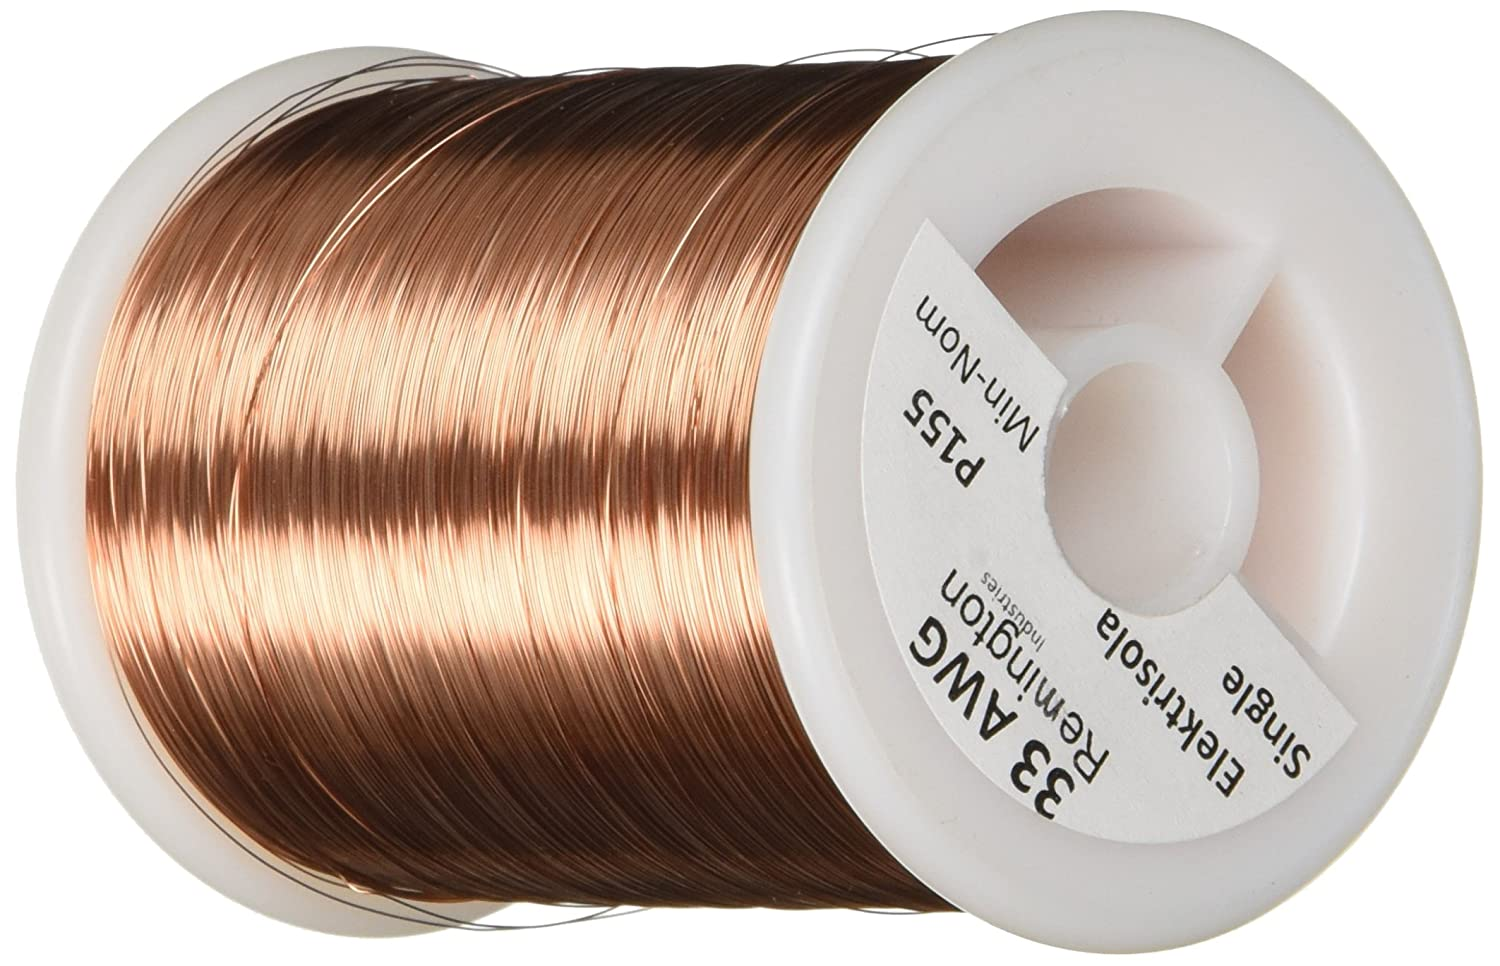 Remington industries 33snsp 33 awg magnet wire enameled copper wire remington industries 33snsp 33 awg magnet wire enameled copper wire 10 lb 00077 diameter 6352 length natural copper metal raw materials greentooth Image collections